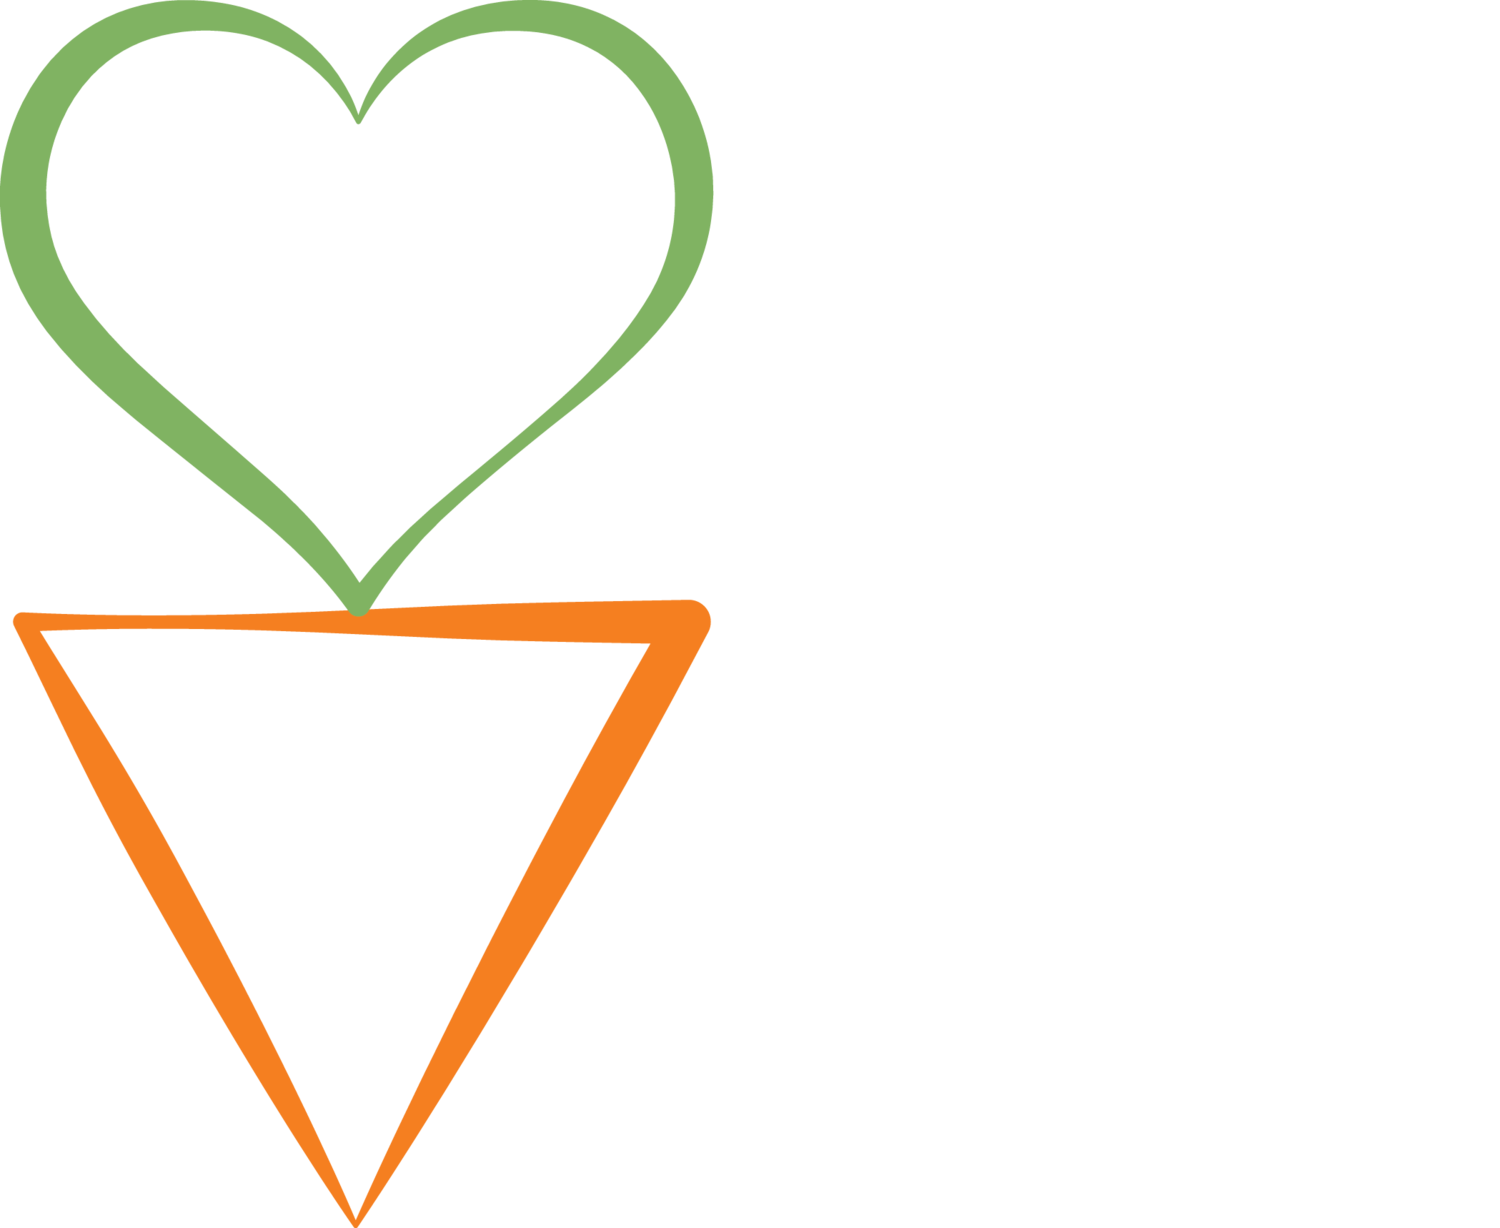 carrot tops are green